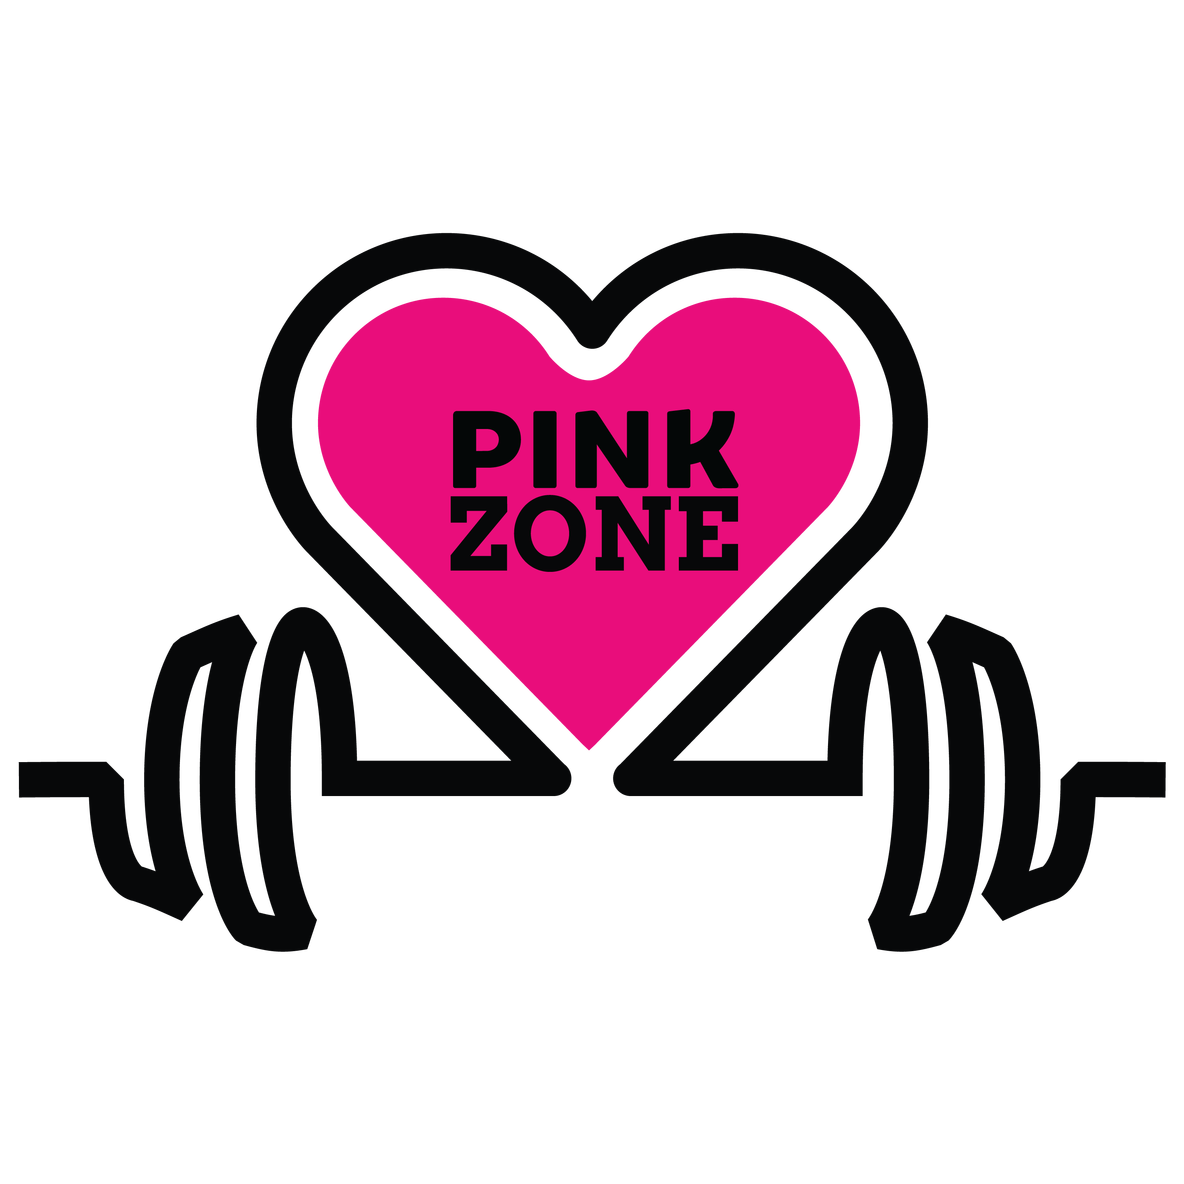 Heart rate monitor clipart clip art royalty free download PinkZONE Heart Rate Training | Pink Gym clip art royalty free download